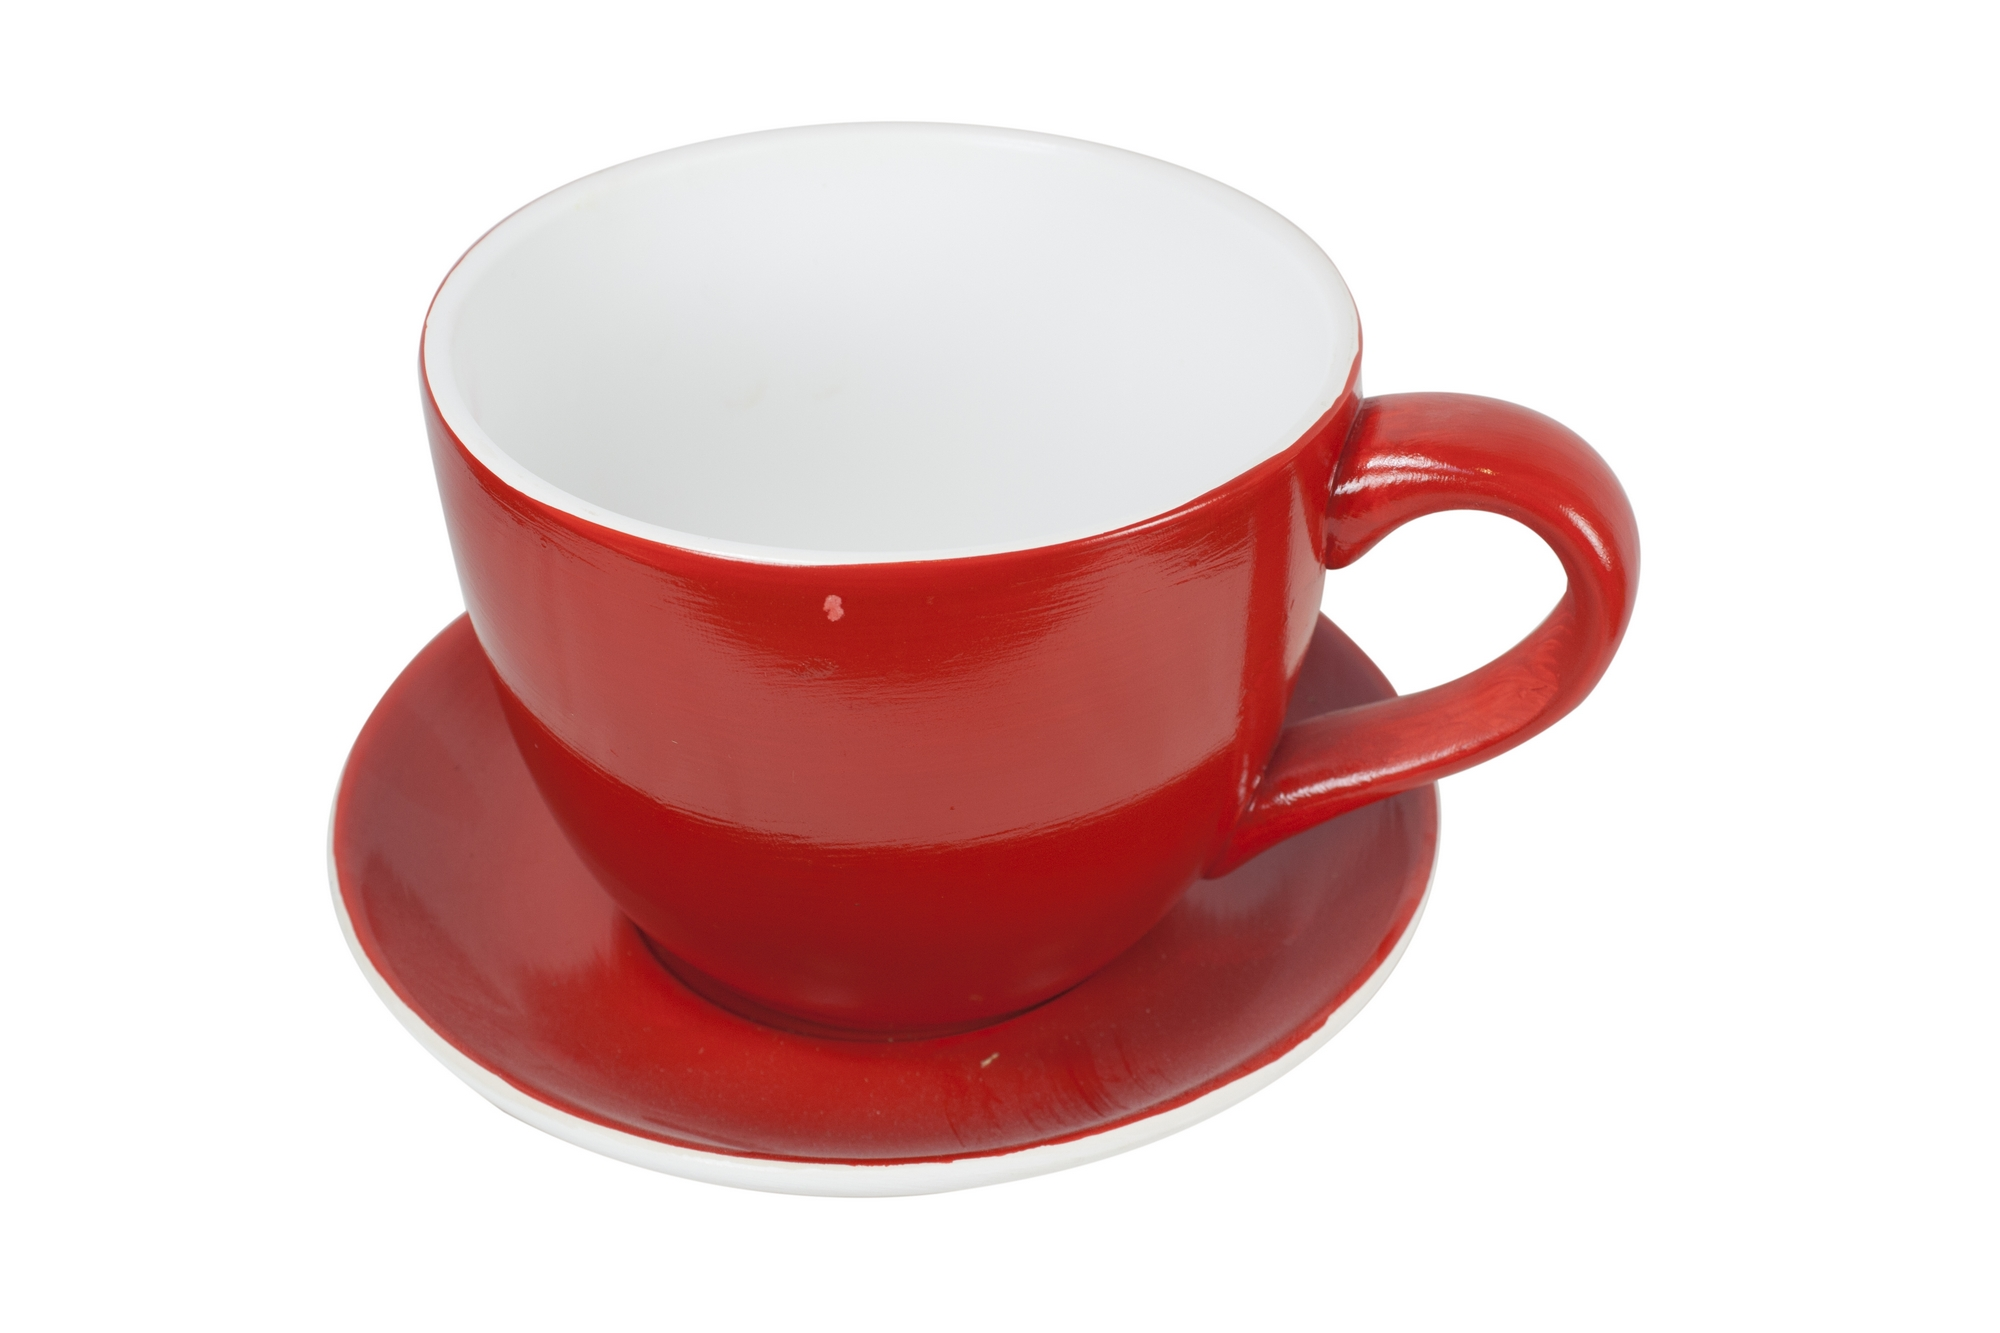 Giant Red Teacup Saucer Planter